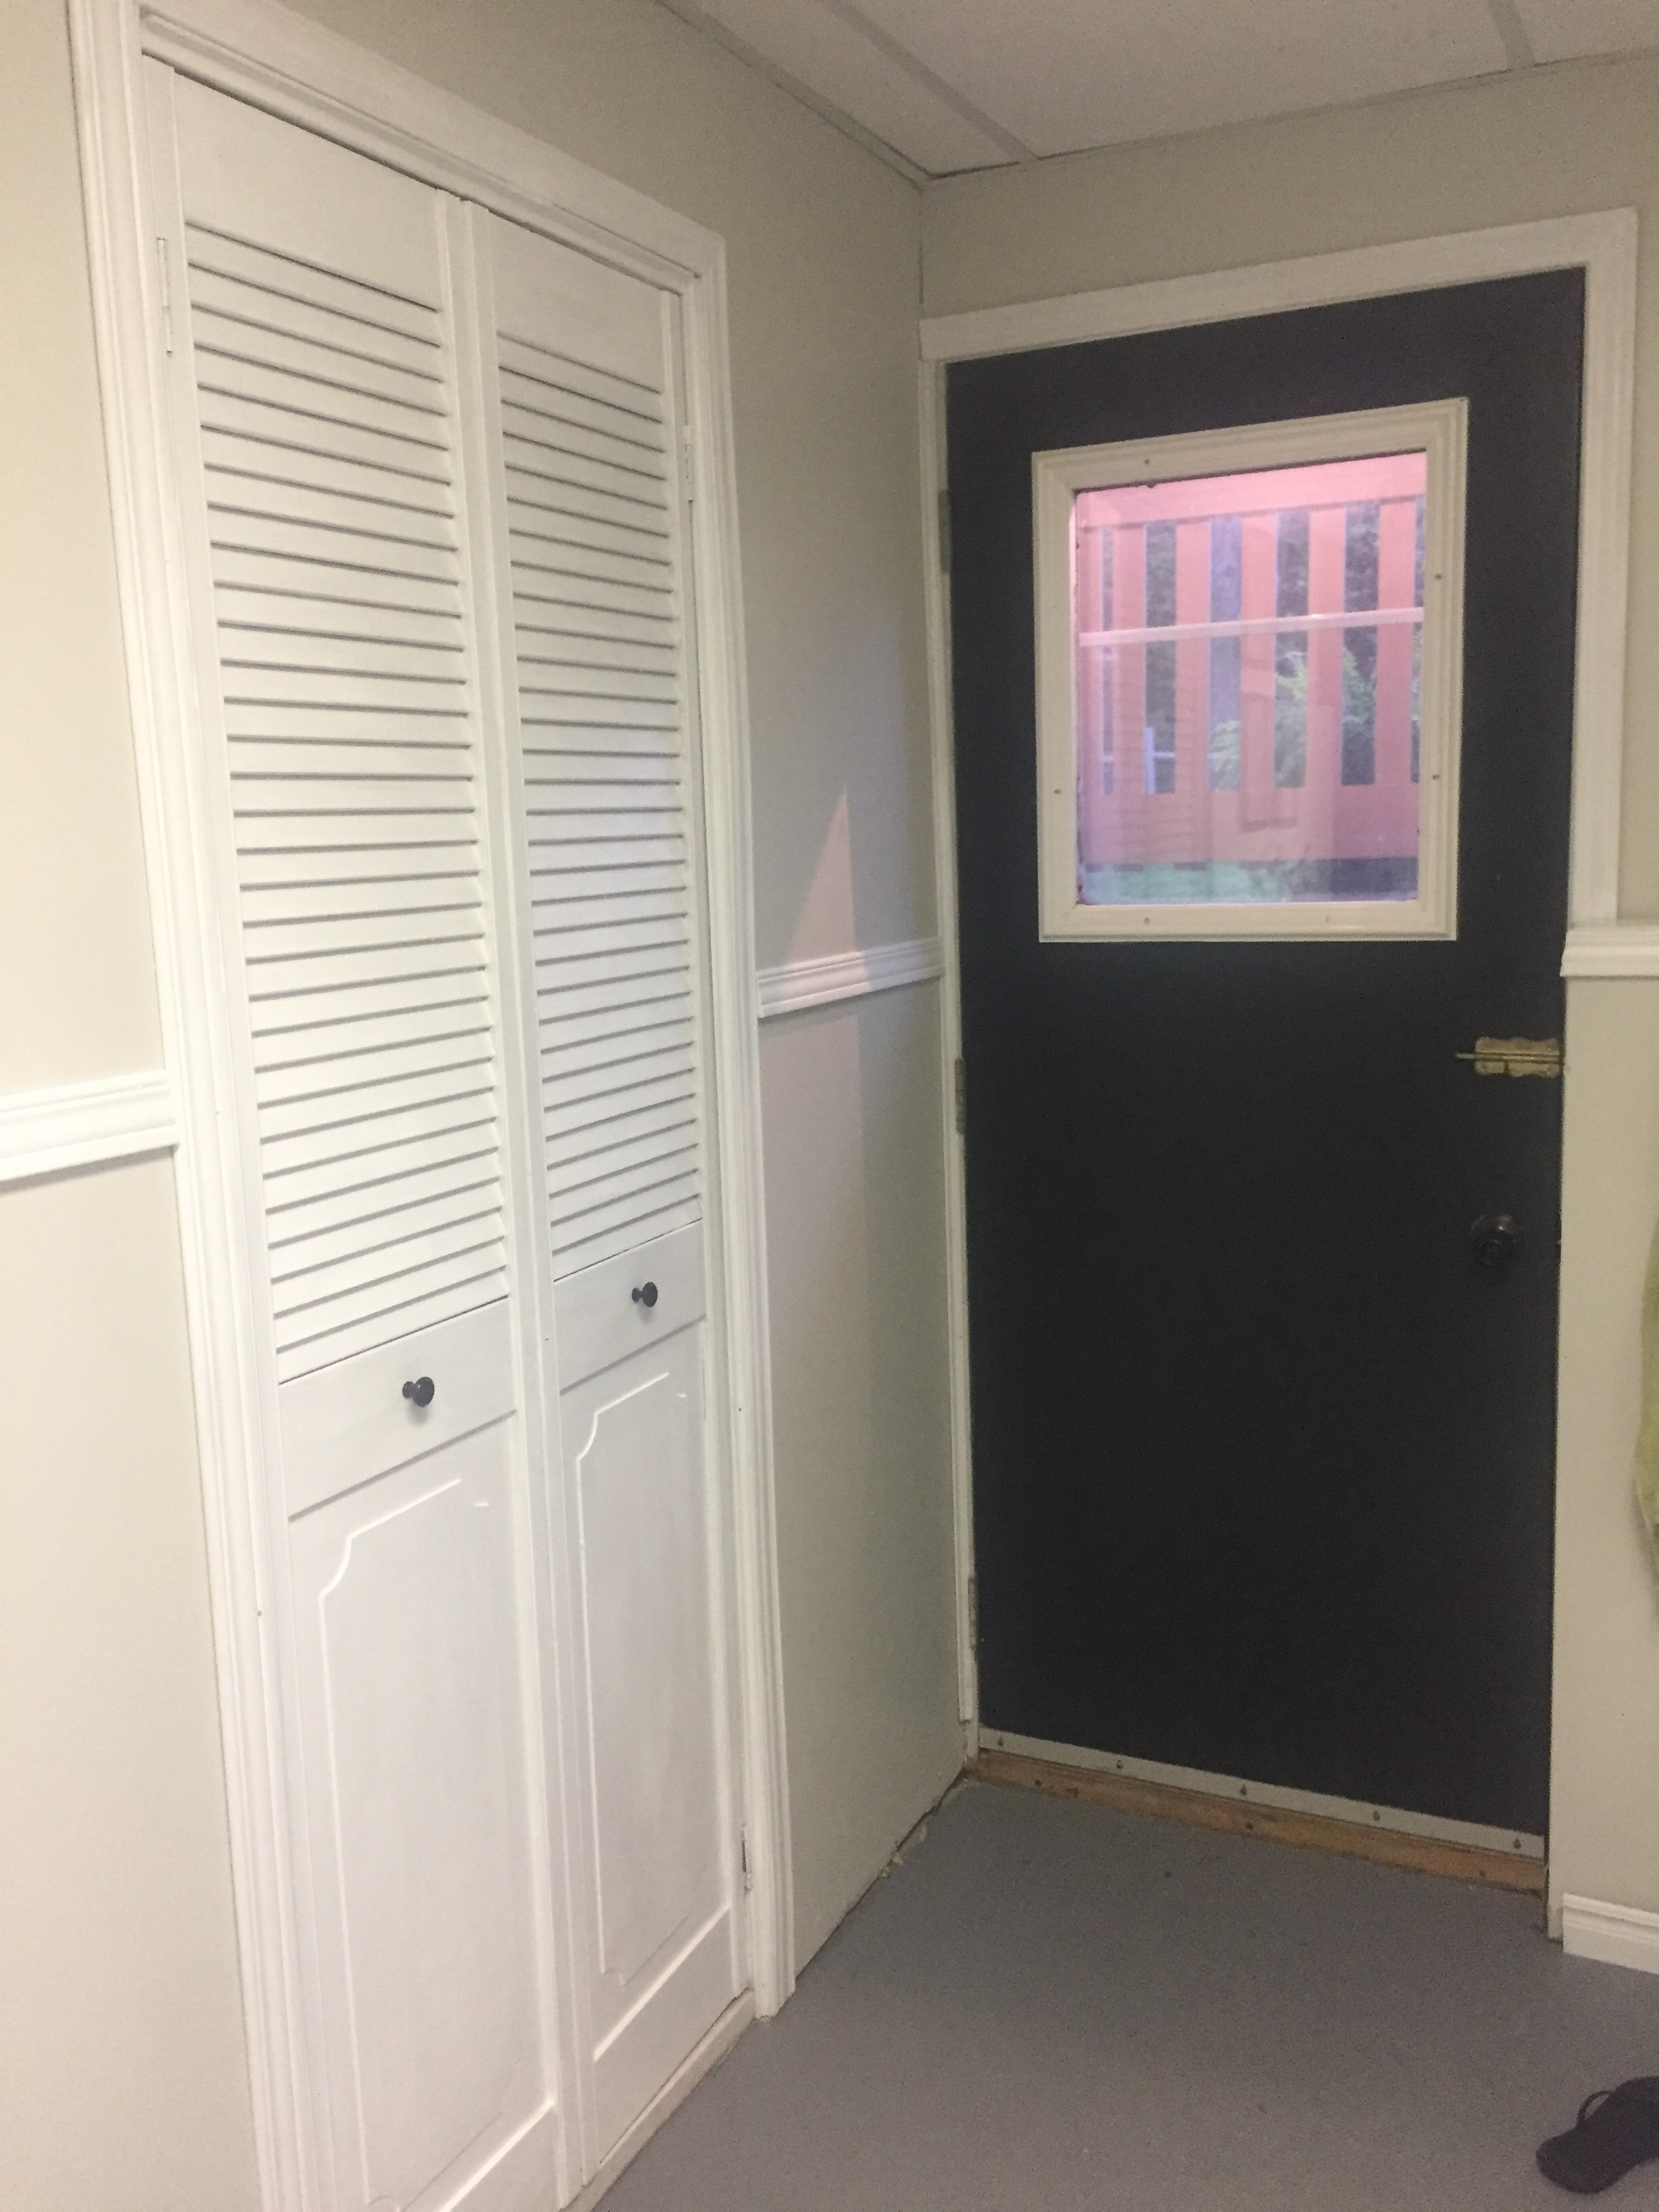 I also painted the back of the door to match the patio door and spray painted the door knob black (Which isn't even visible in this photo)